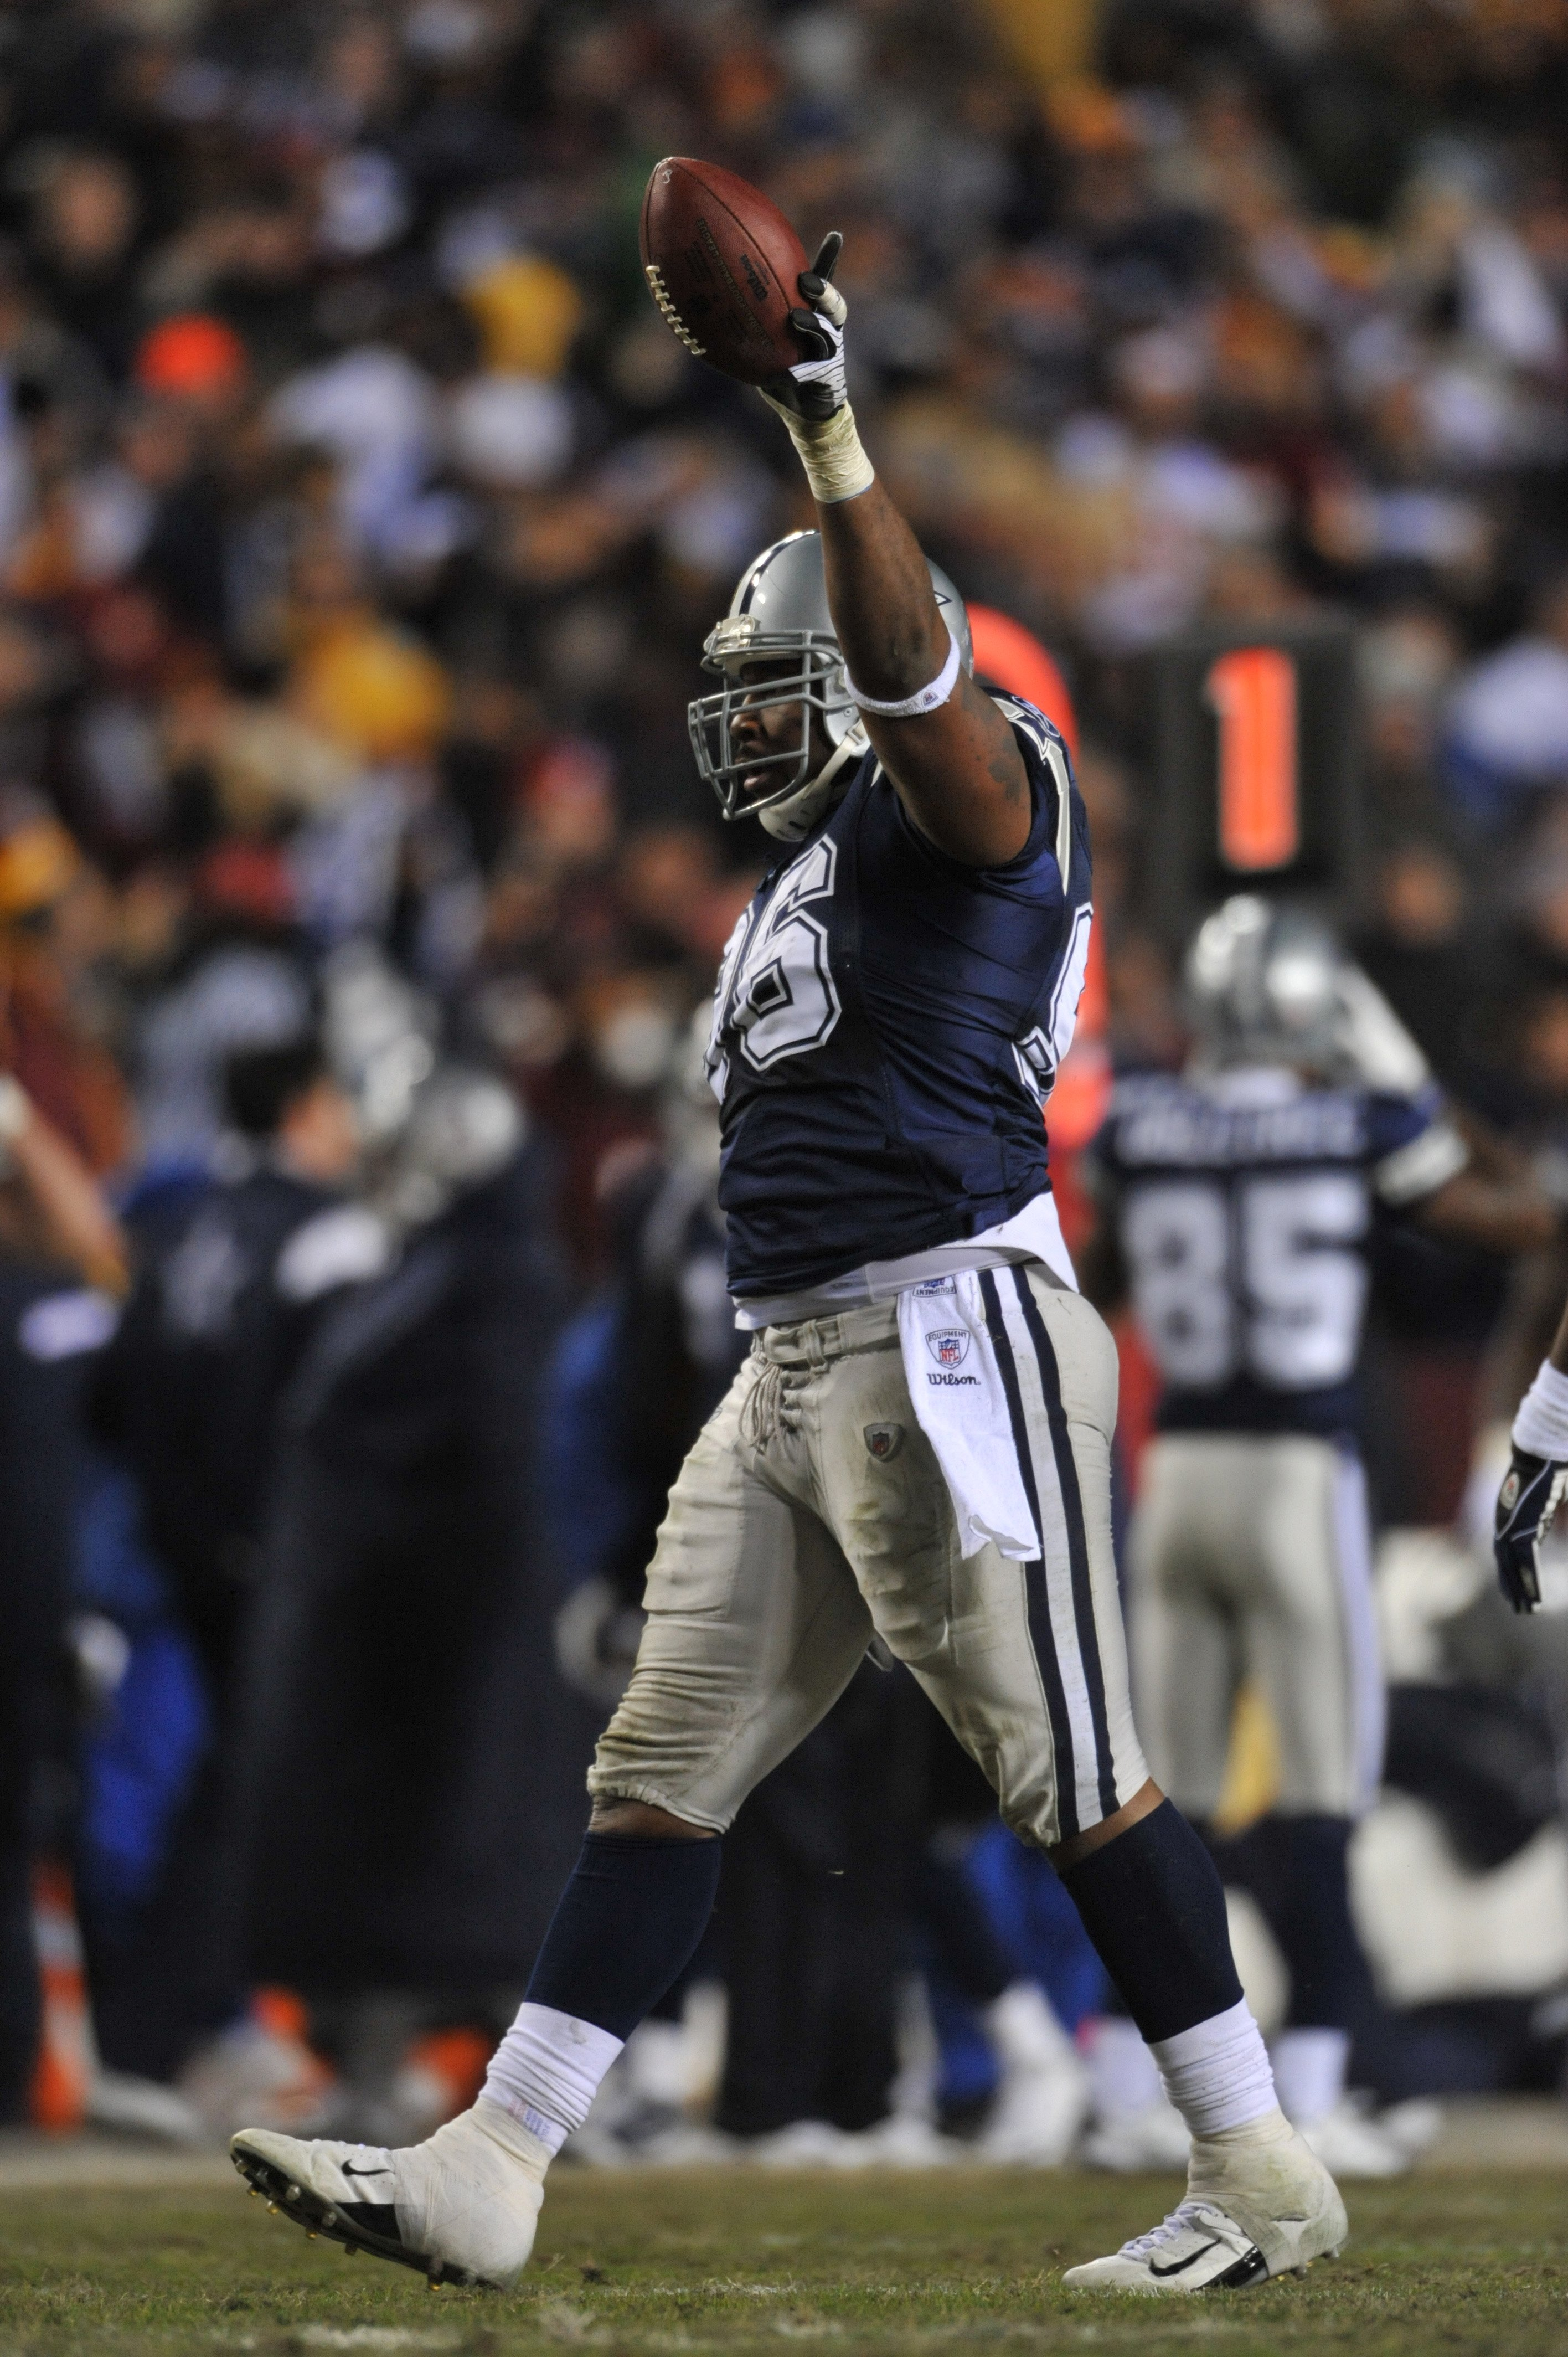 LANDOVER, MD - DECEMBER 27:  Marcus Spears #96 of the Dallas Cowboys celebrates the recovery of the ball during the game against the Washington Redskins at FedExField on December 27, 2009 in Landover, Maryland. The Cowboys defeated the Redskins 17-0. (Pho